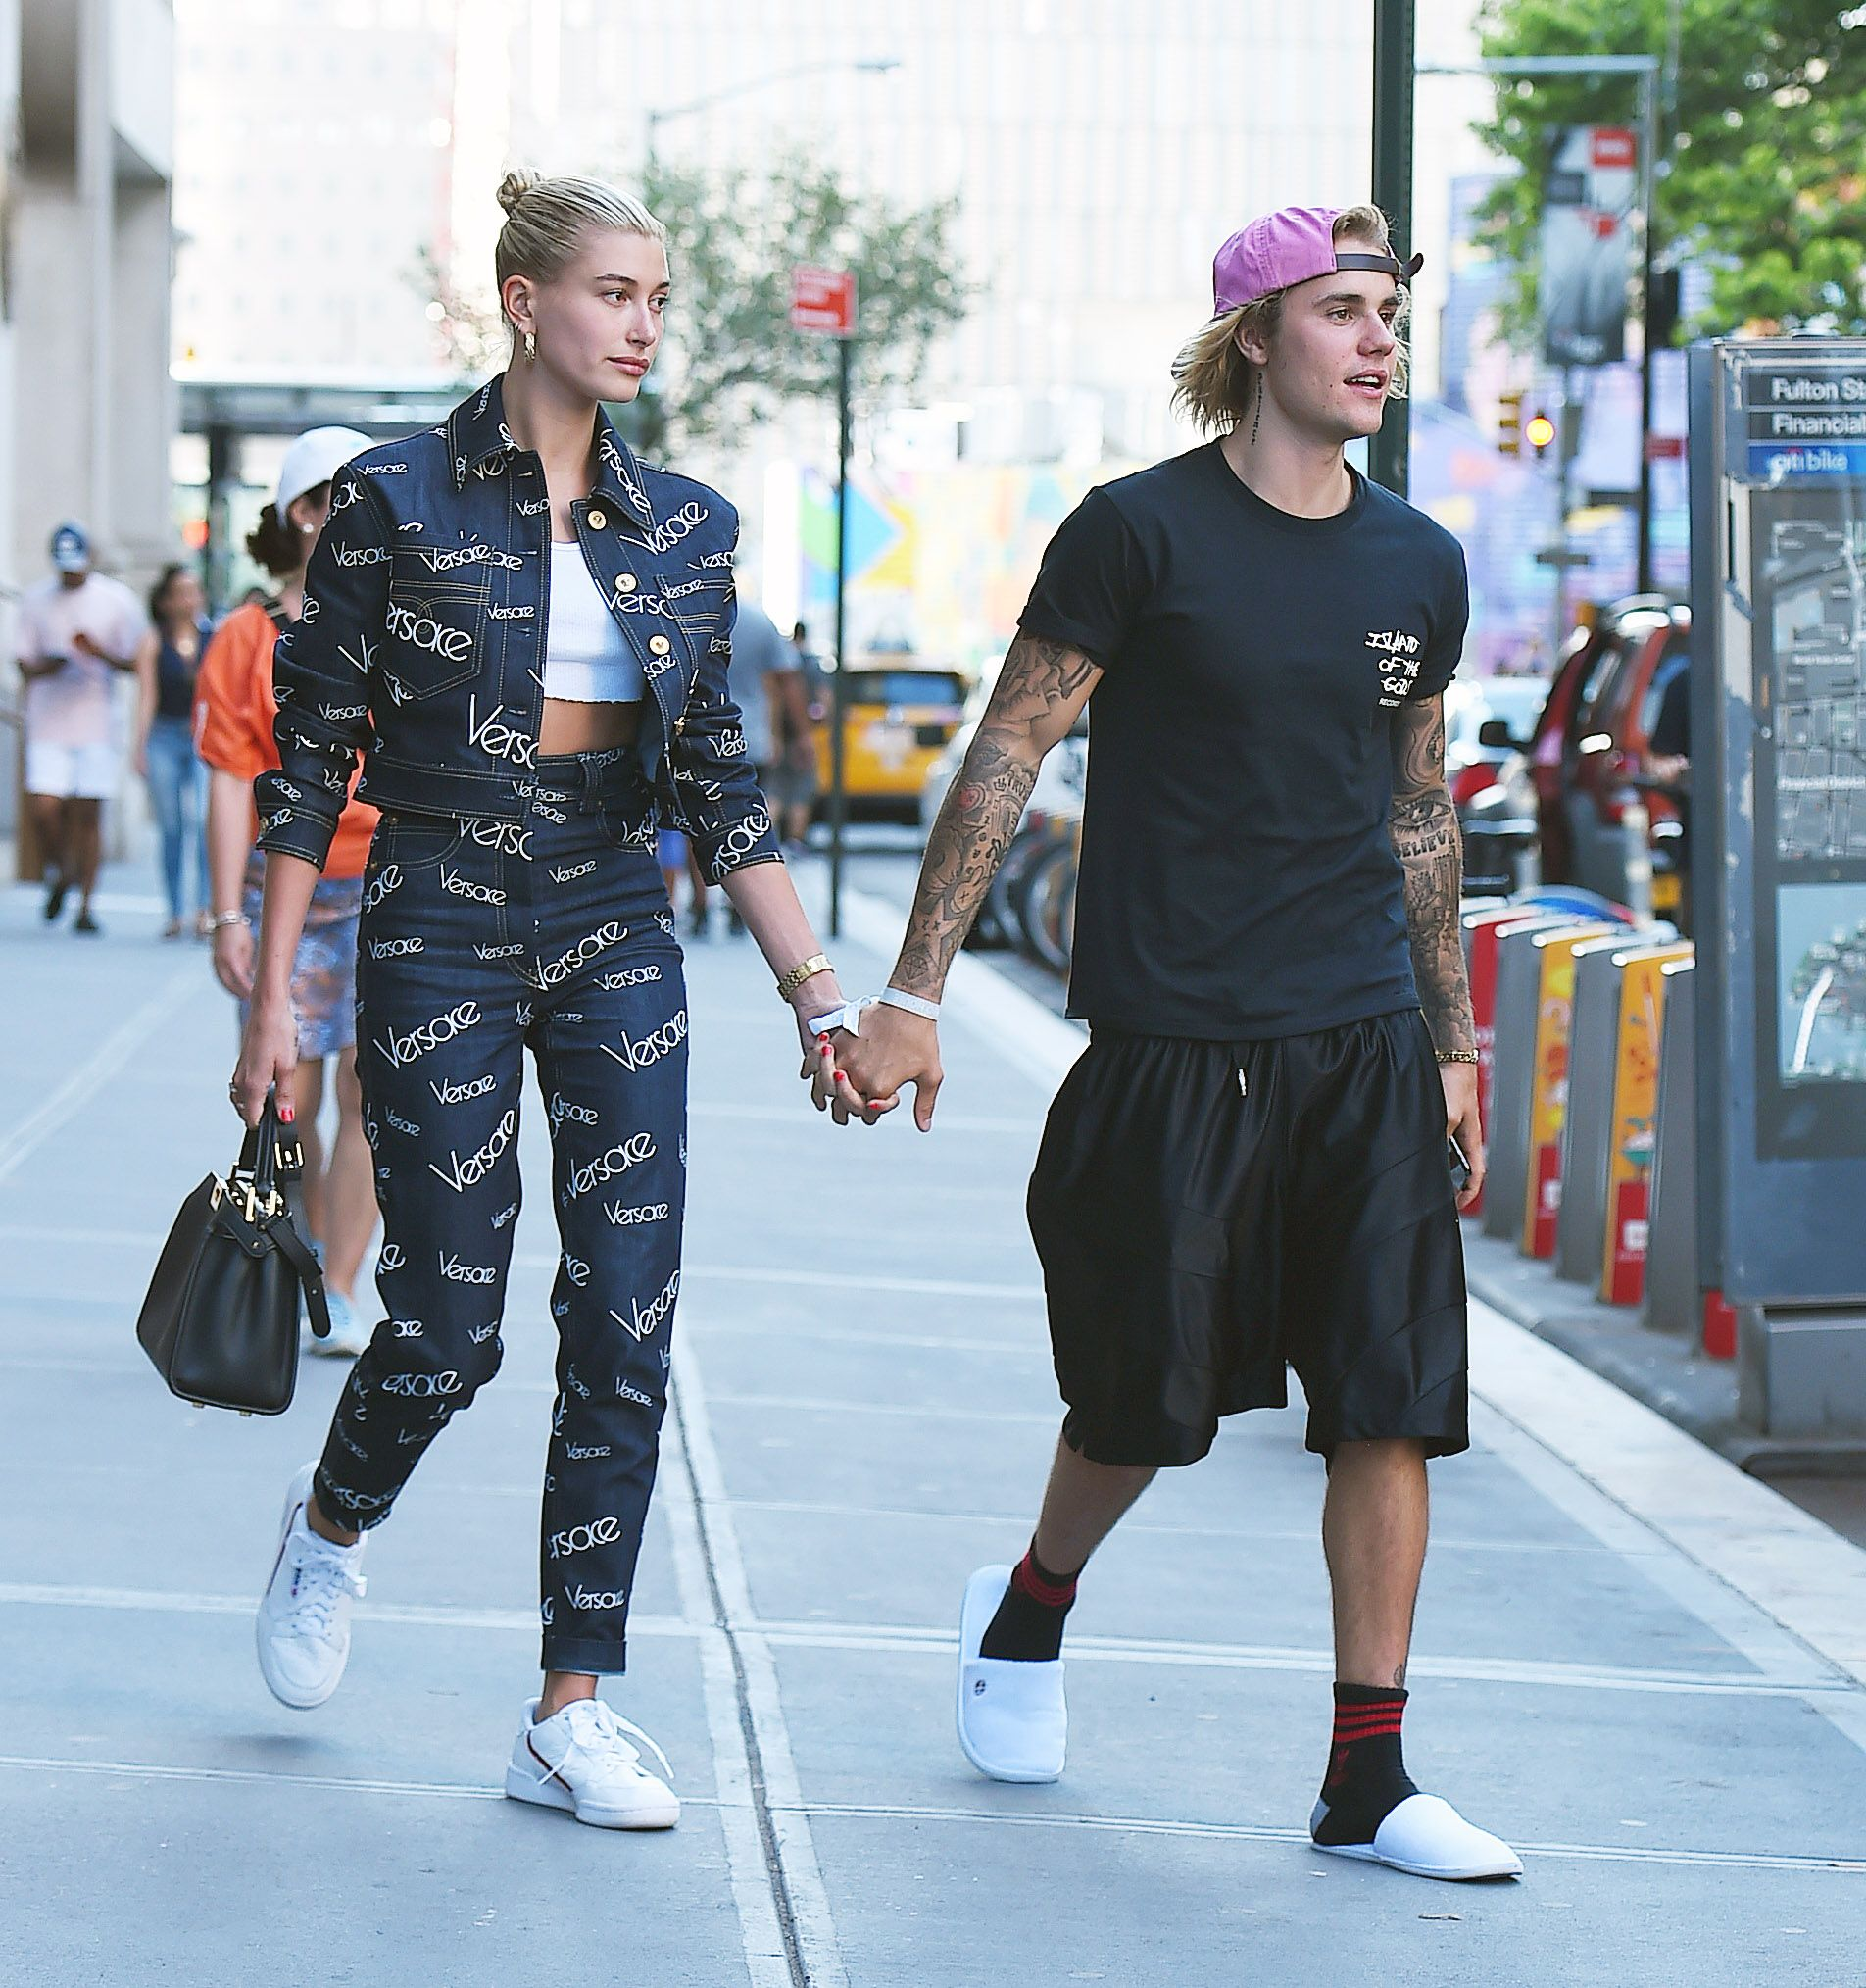 Justin Bieber Posts Baby Fever Instagrams After Marrying Hailey Baldwin